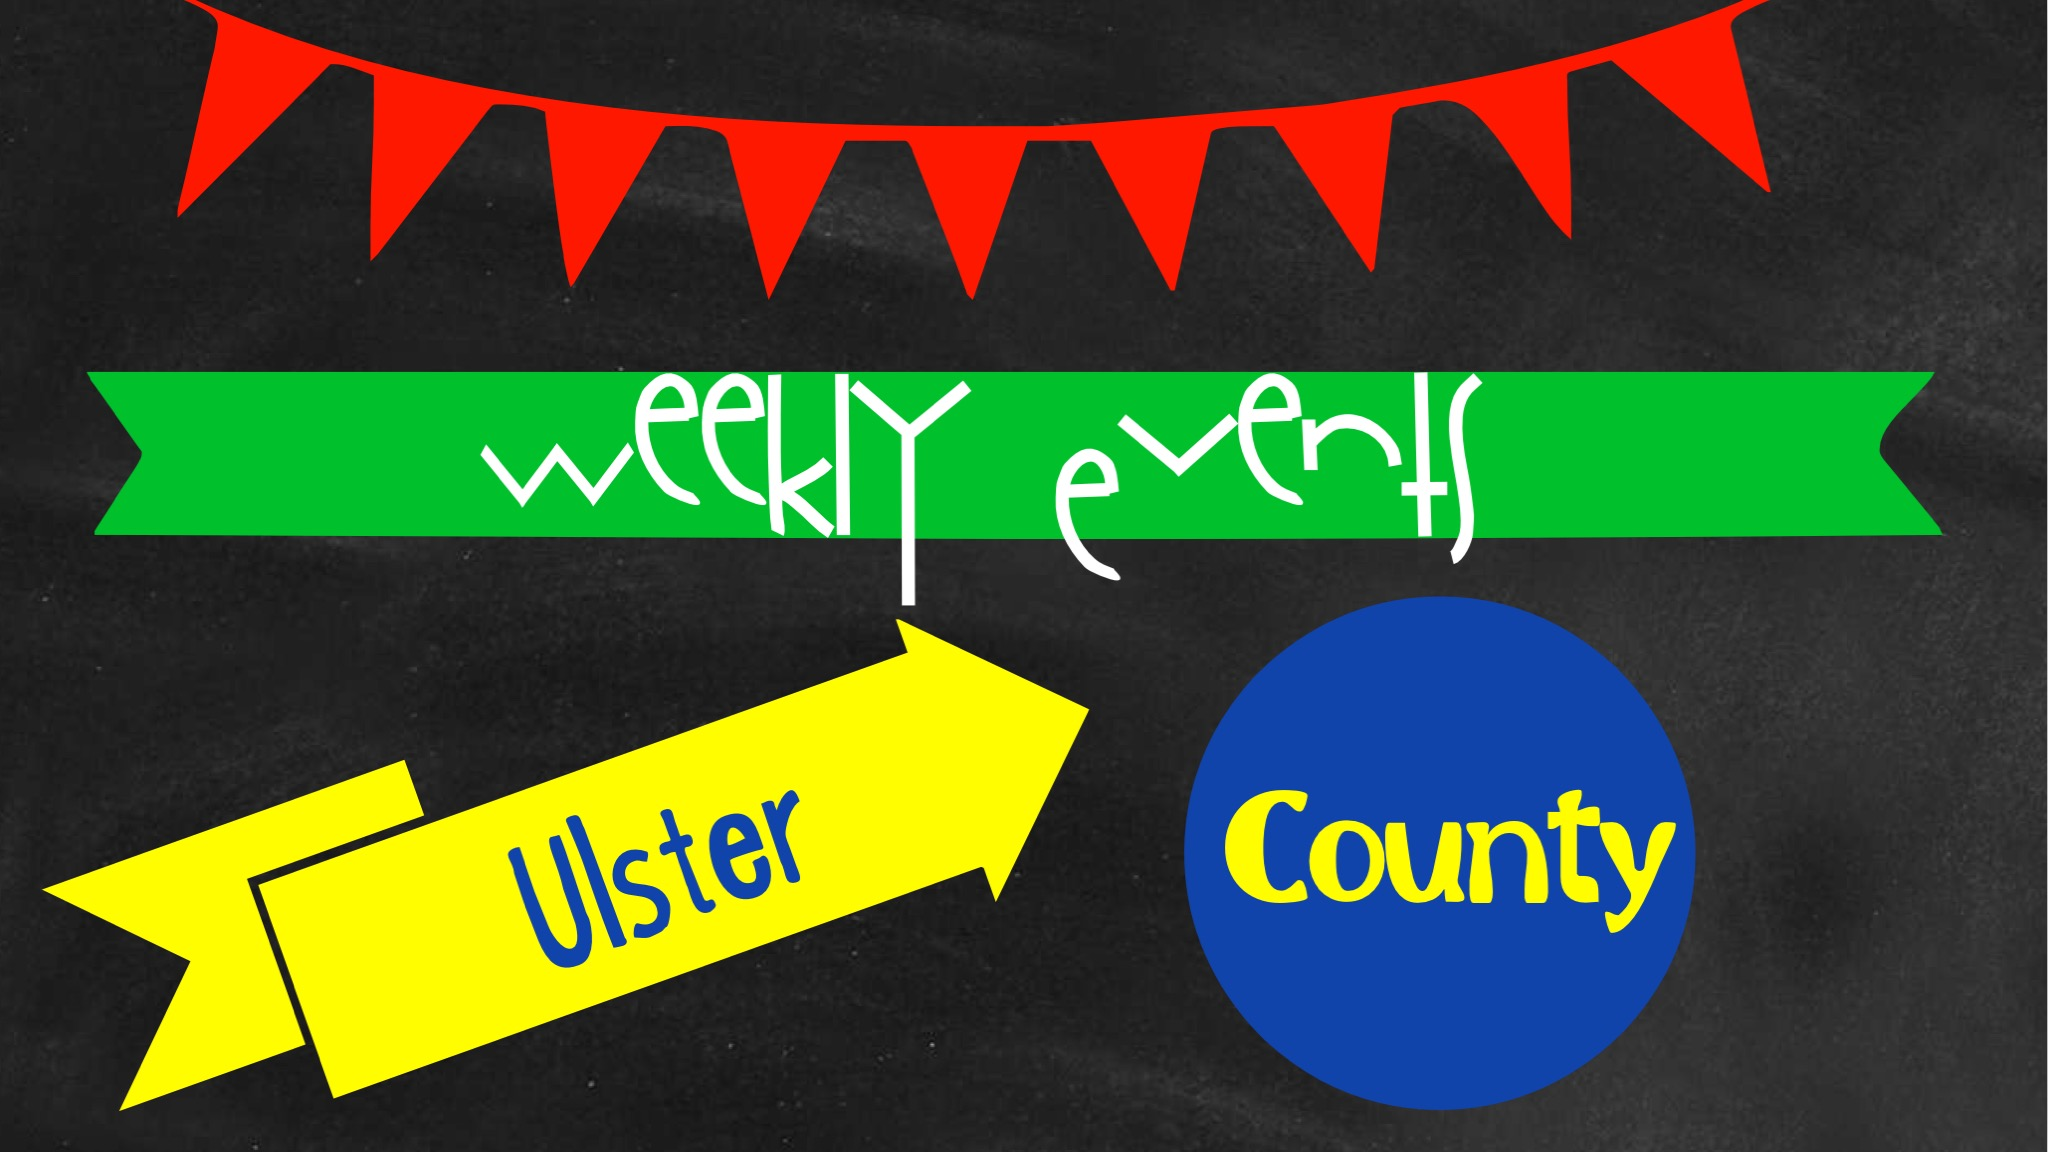 Ulster County Events 11/26-12/1